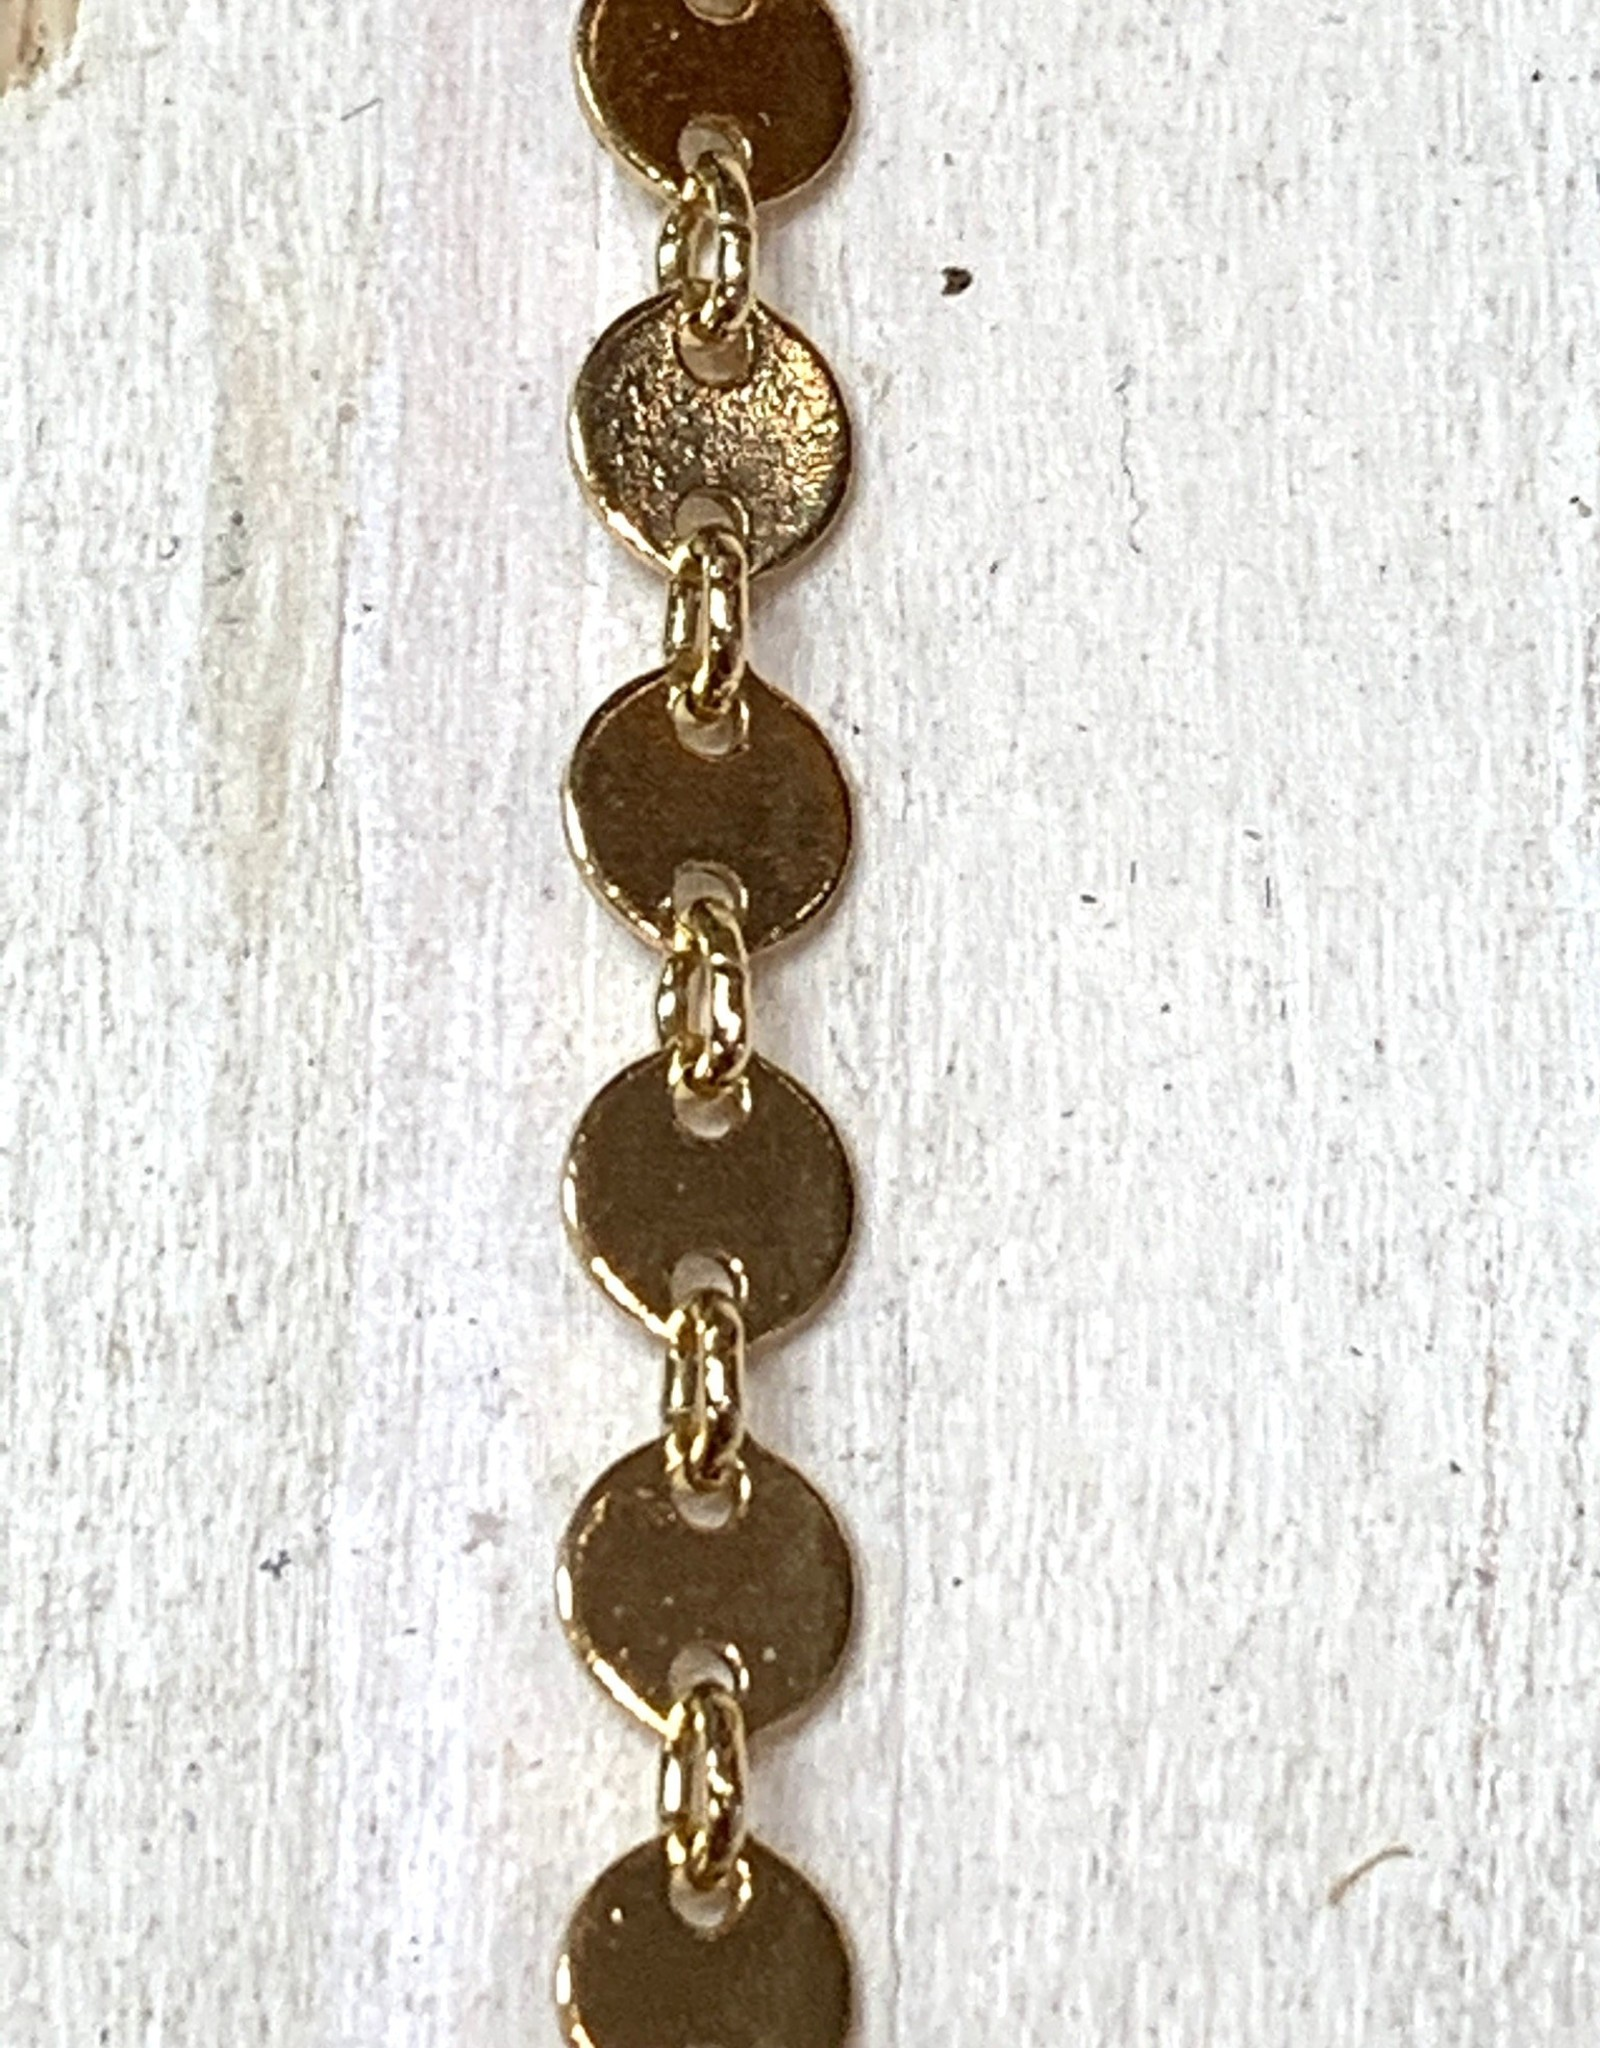 4mm Connector Chain 14k Gold Filled Inch